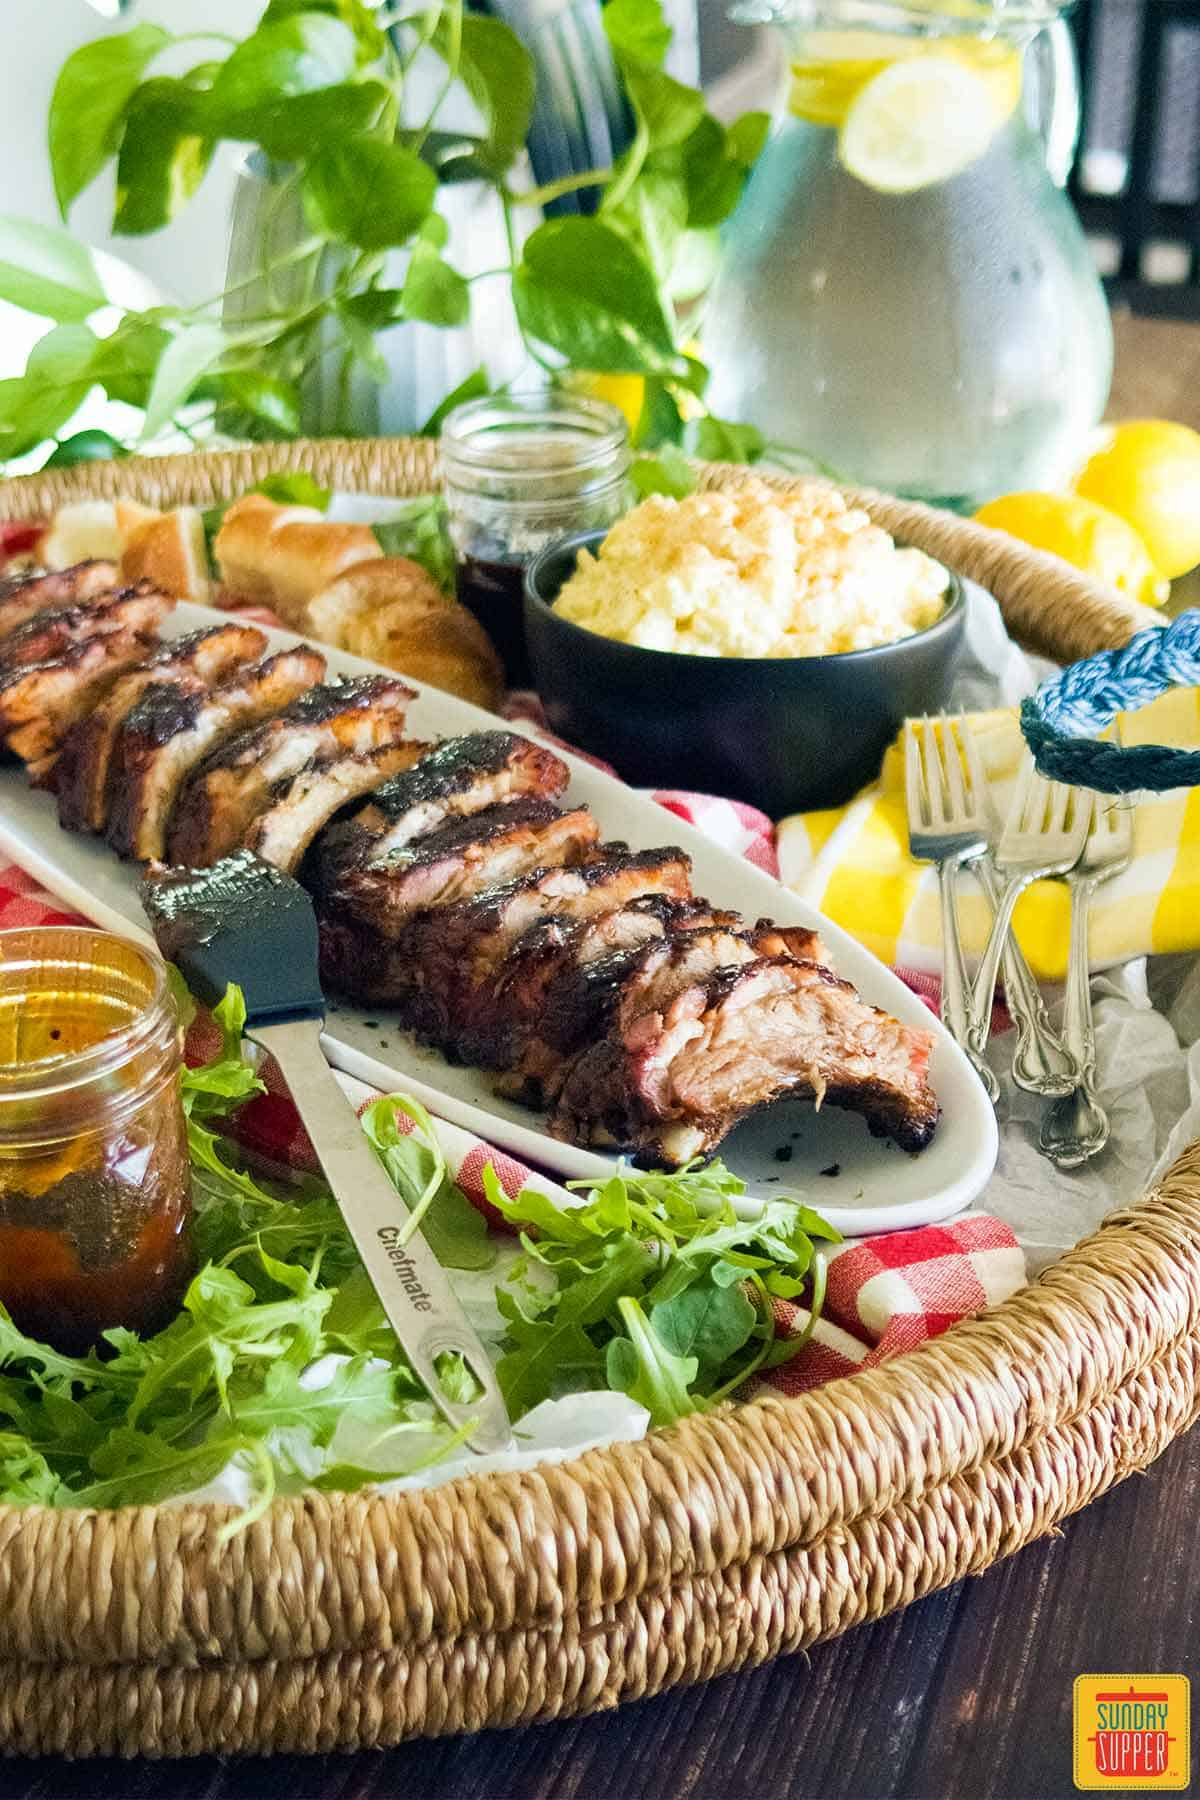 Sliced pork back ribs on a platter with side dishes